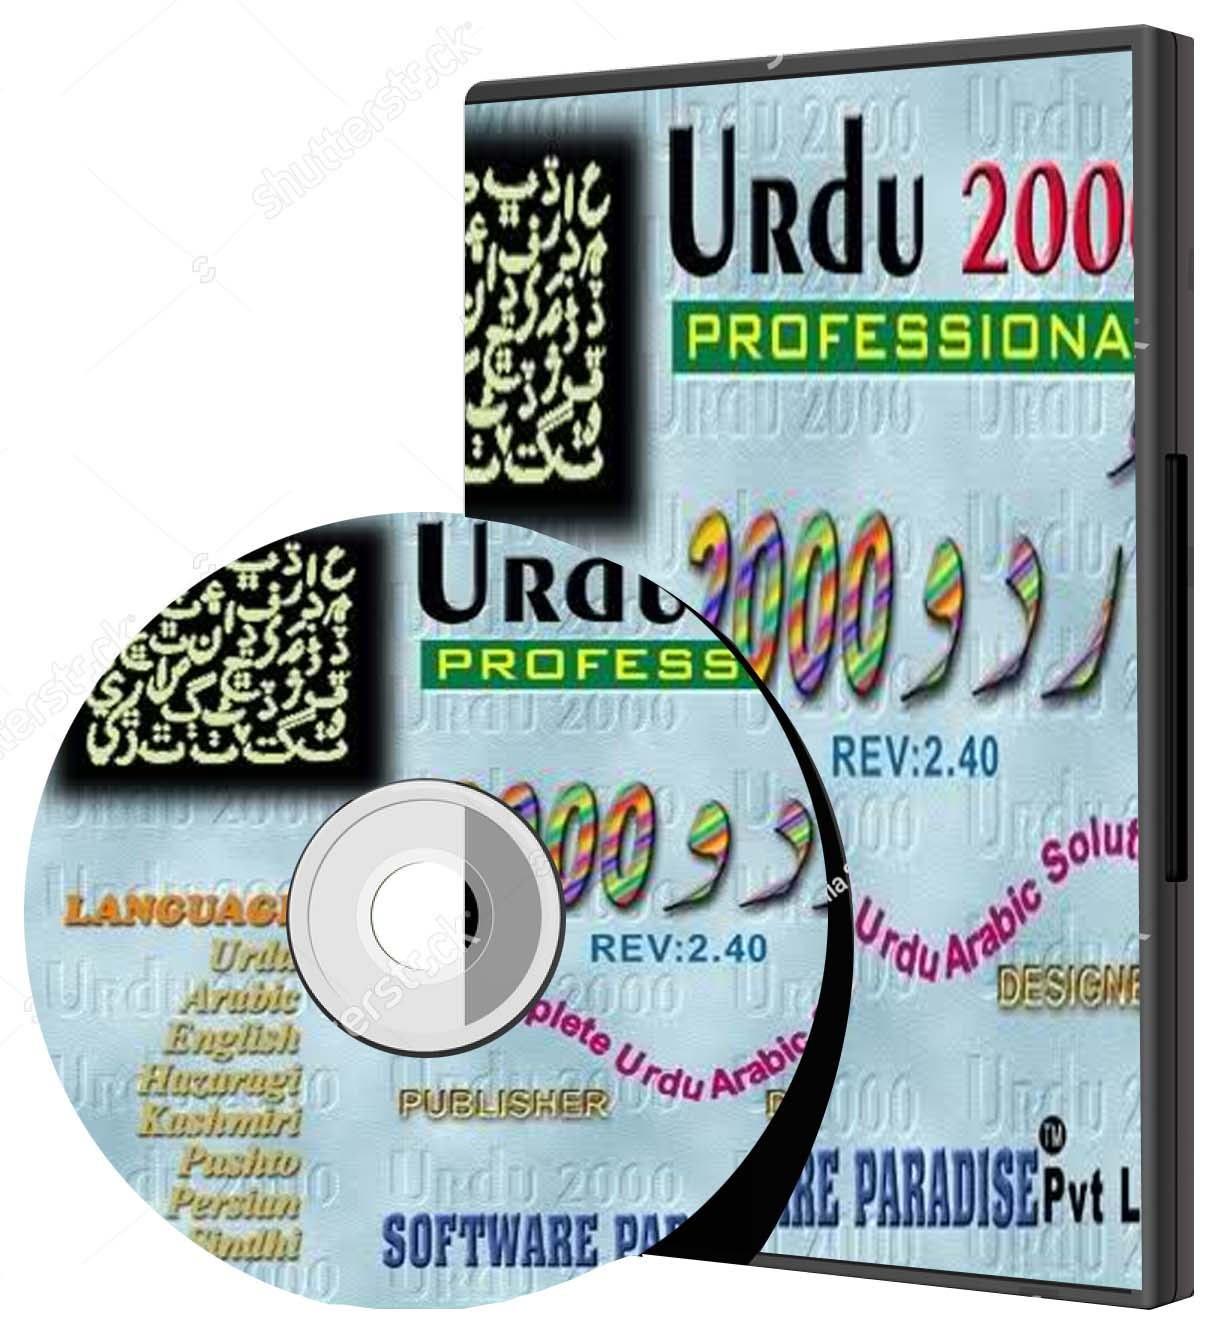 urdu inpage free download 2000